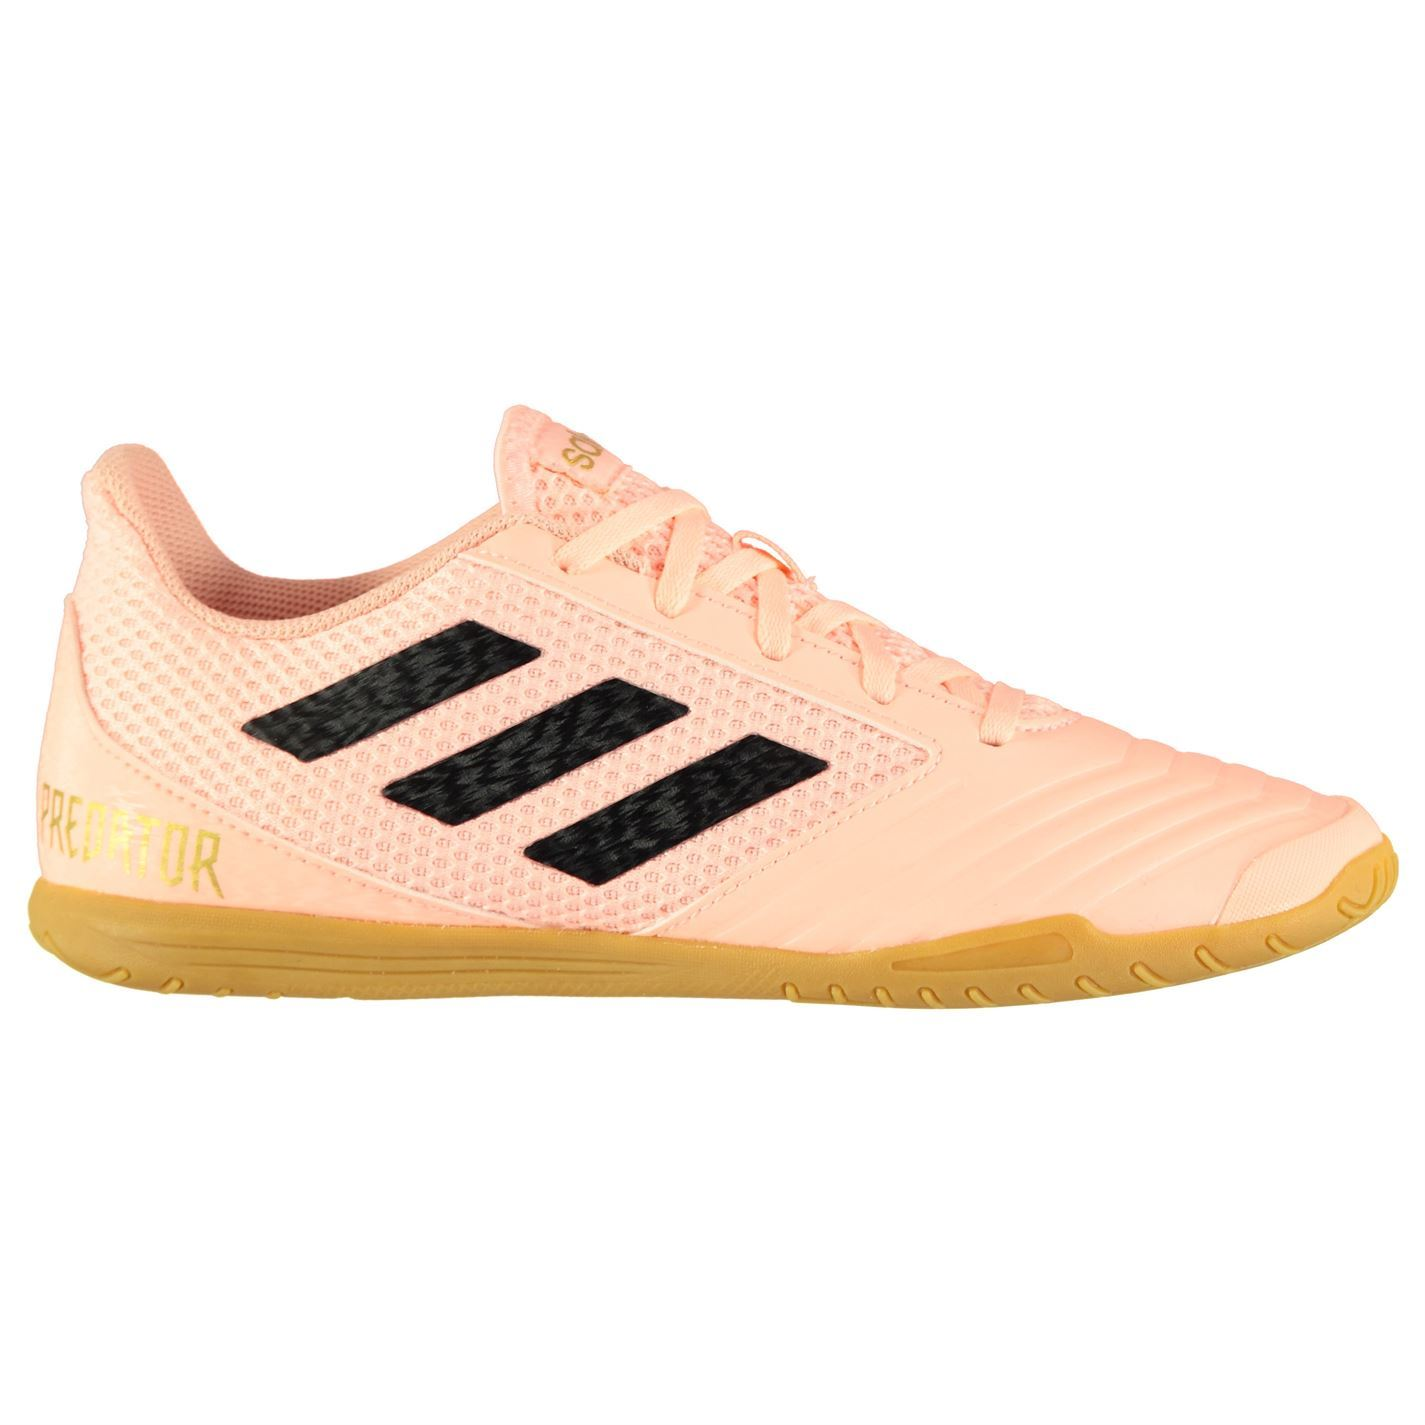 quality design ffc9c 63b85 adidas-Predator-Tango-18-4-Sala-Indoor-Football-